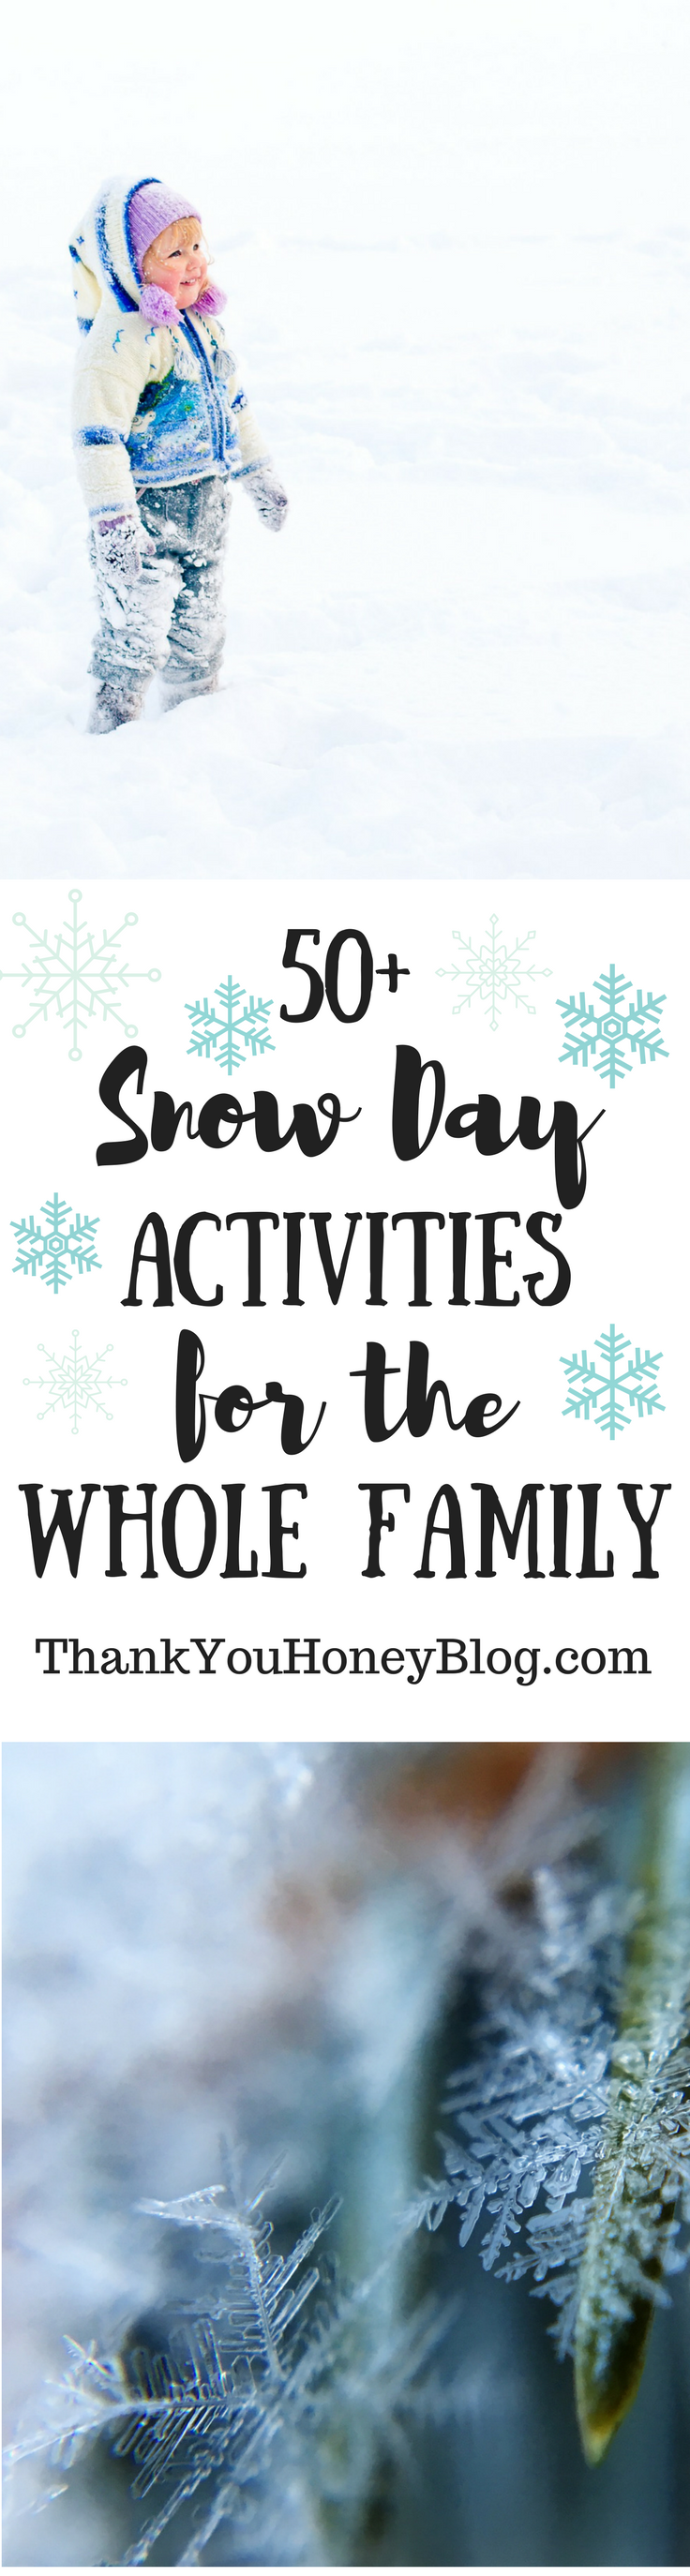 50+ Snow Day Activities for the Whole Family